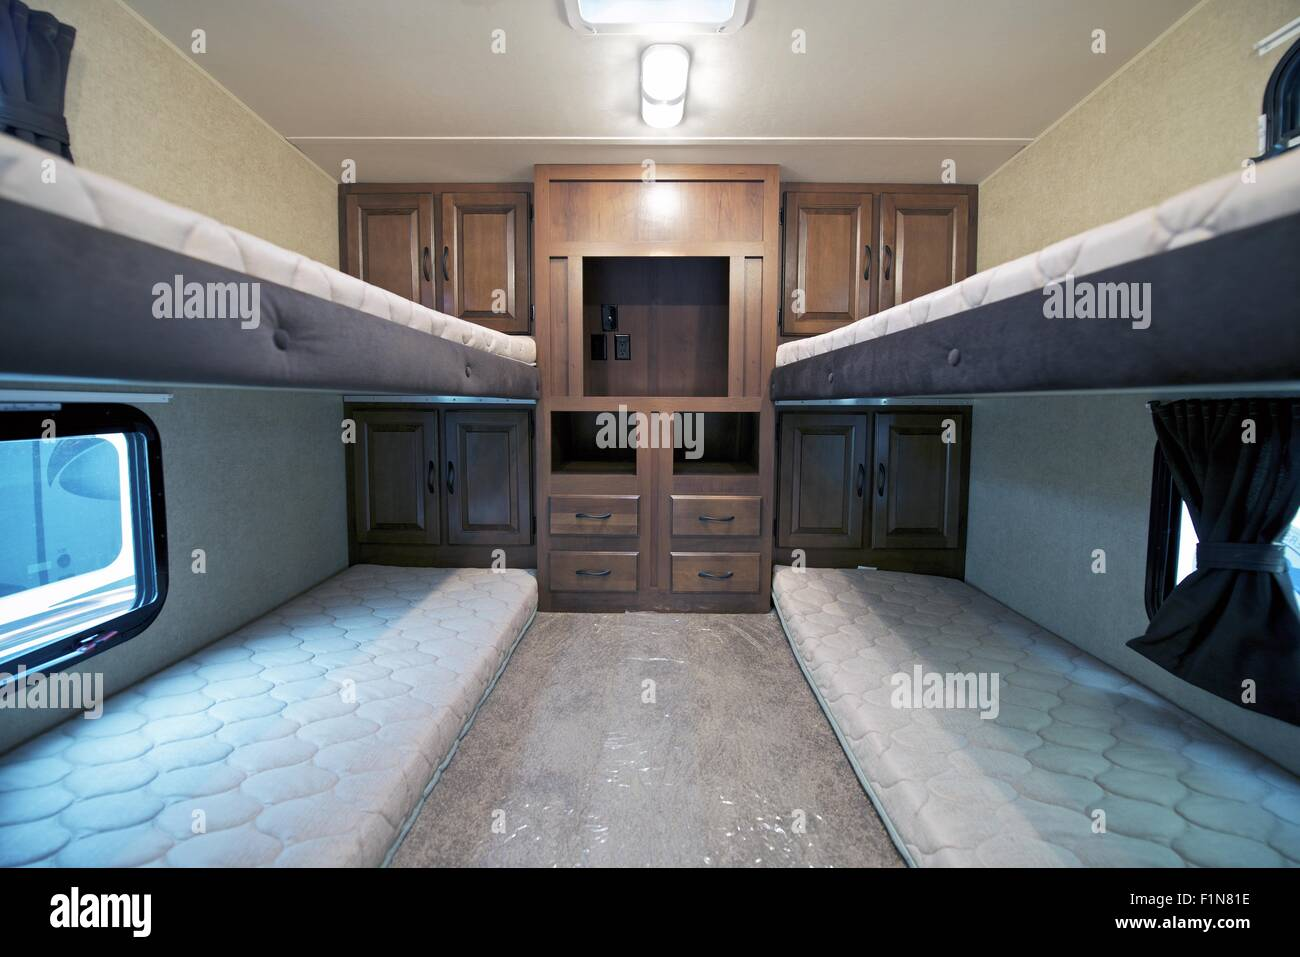 Travel Trailers With Bunk Beds Rv Sleeping Area Stock Photo